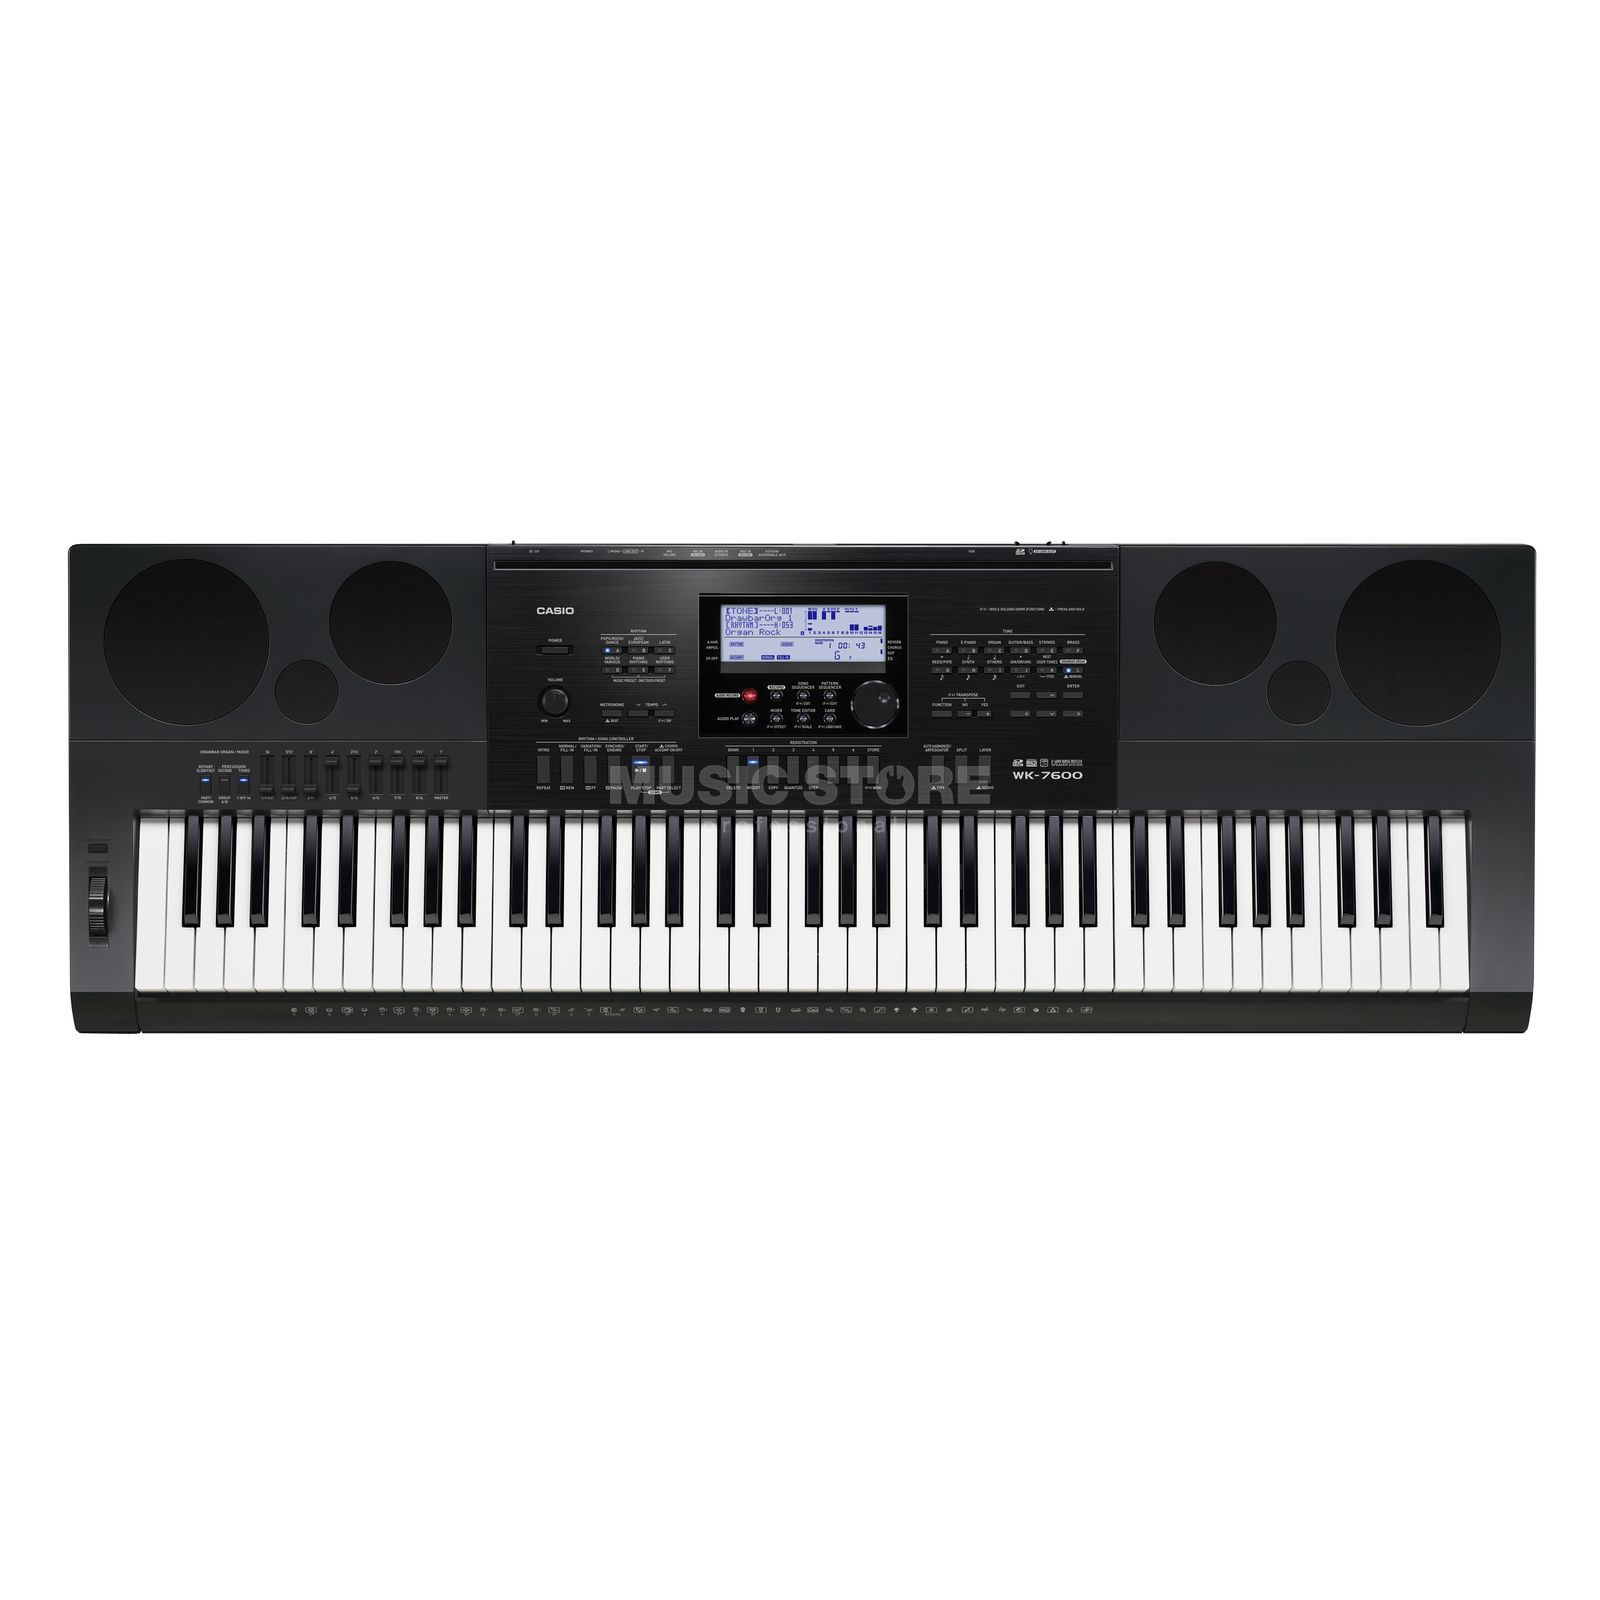 Casio WK-7600 Keyboard Produktbild